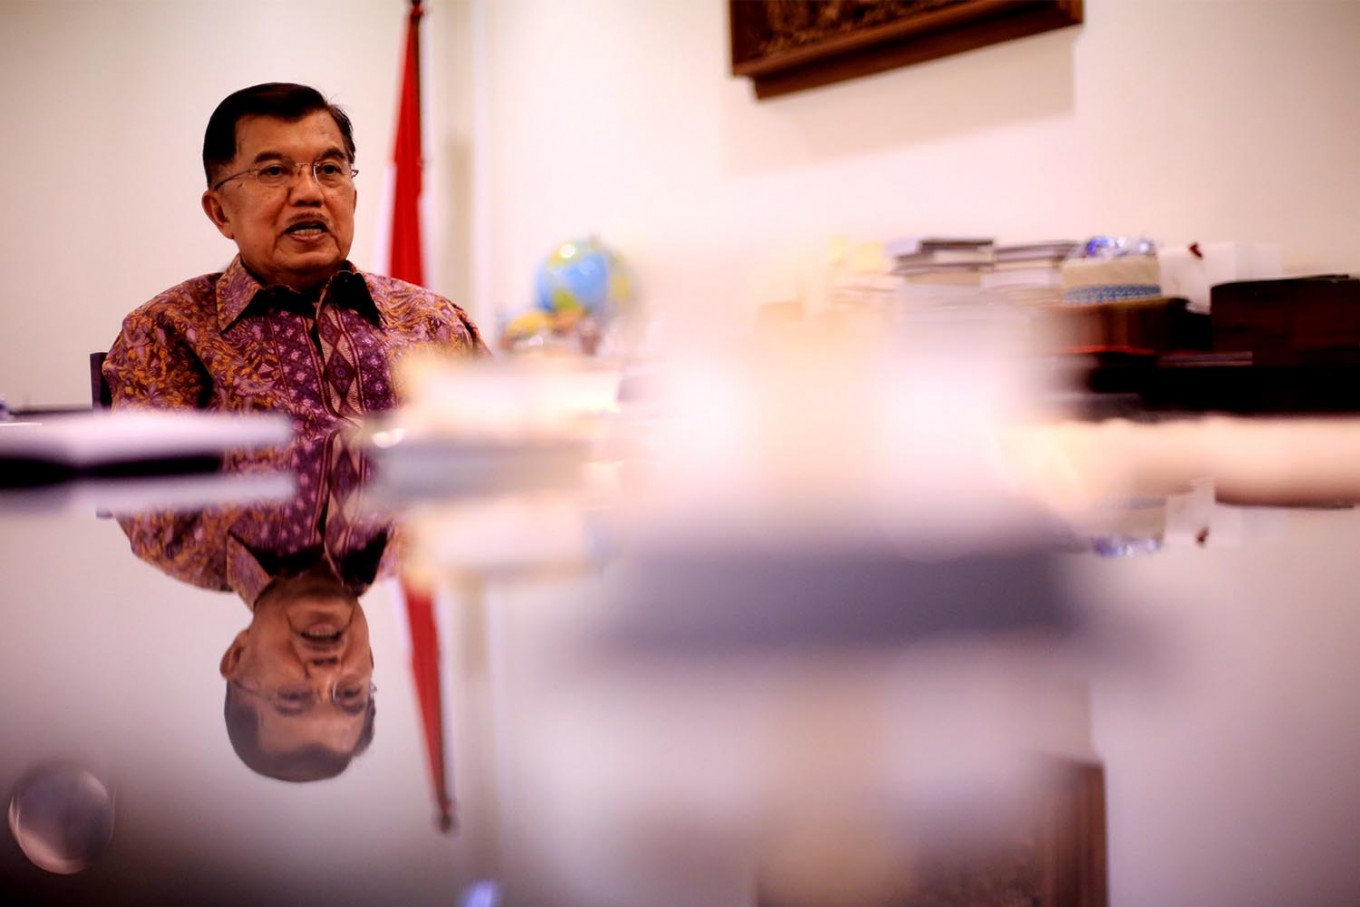 VP calls on Prabowo, Sandiaga to calm protestors down